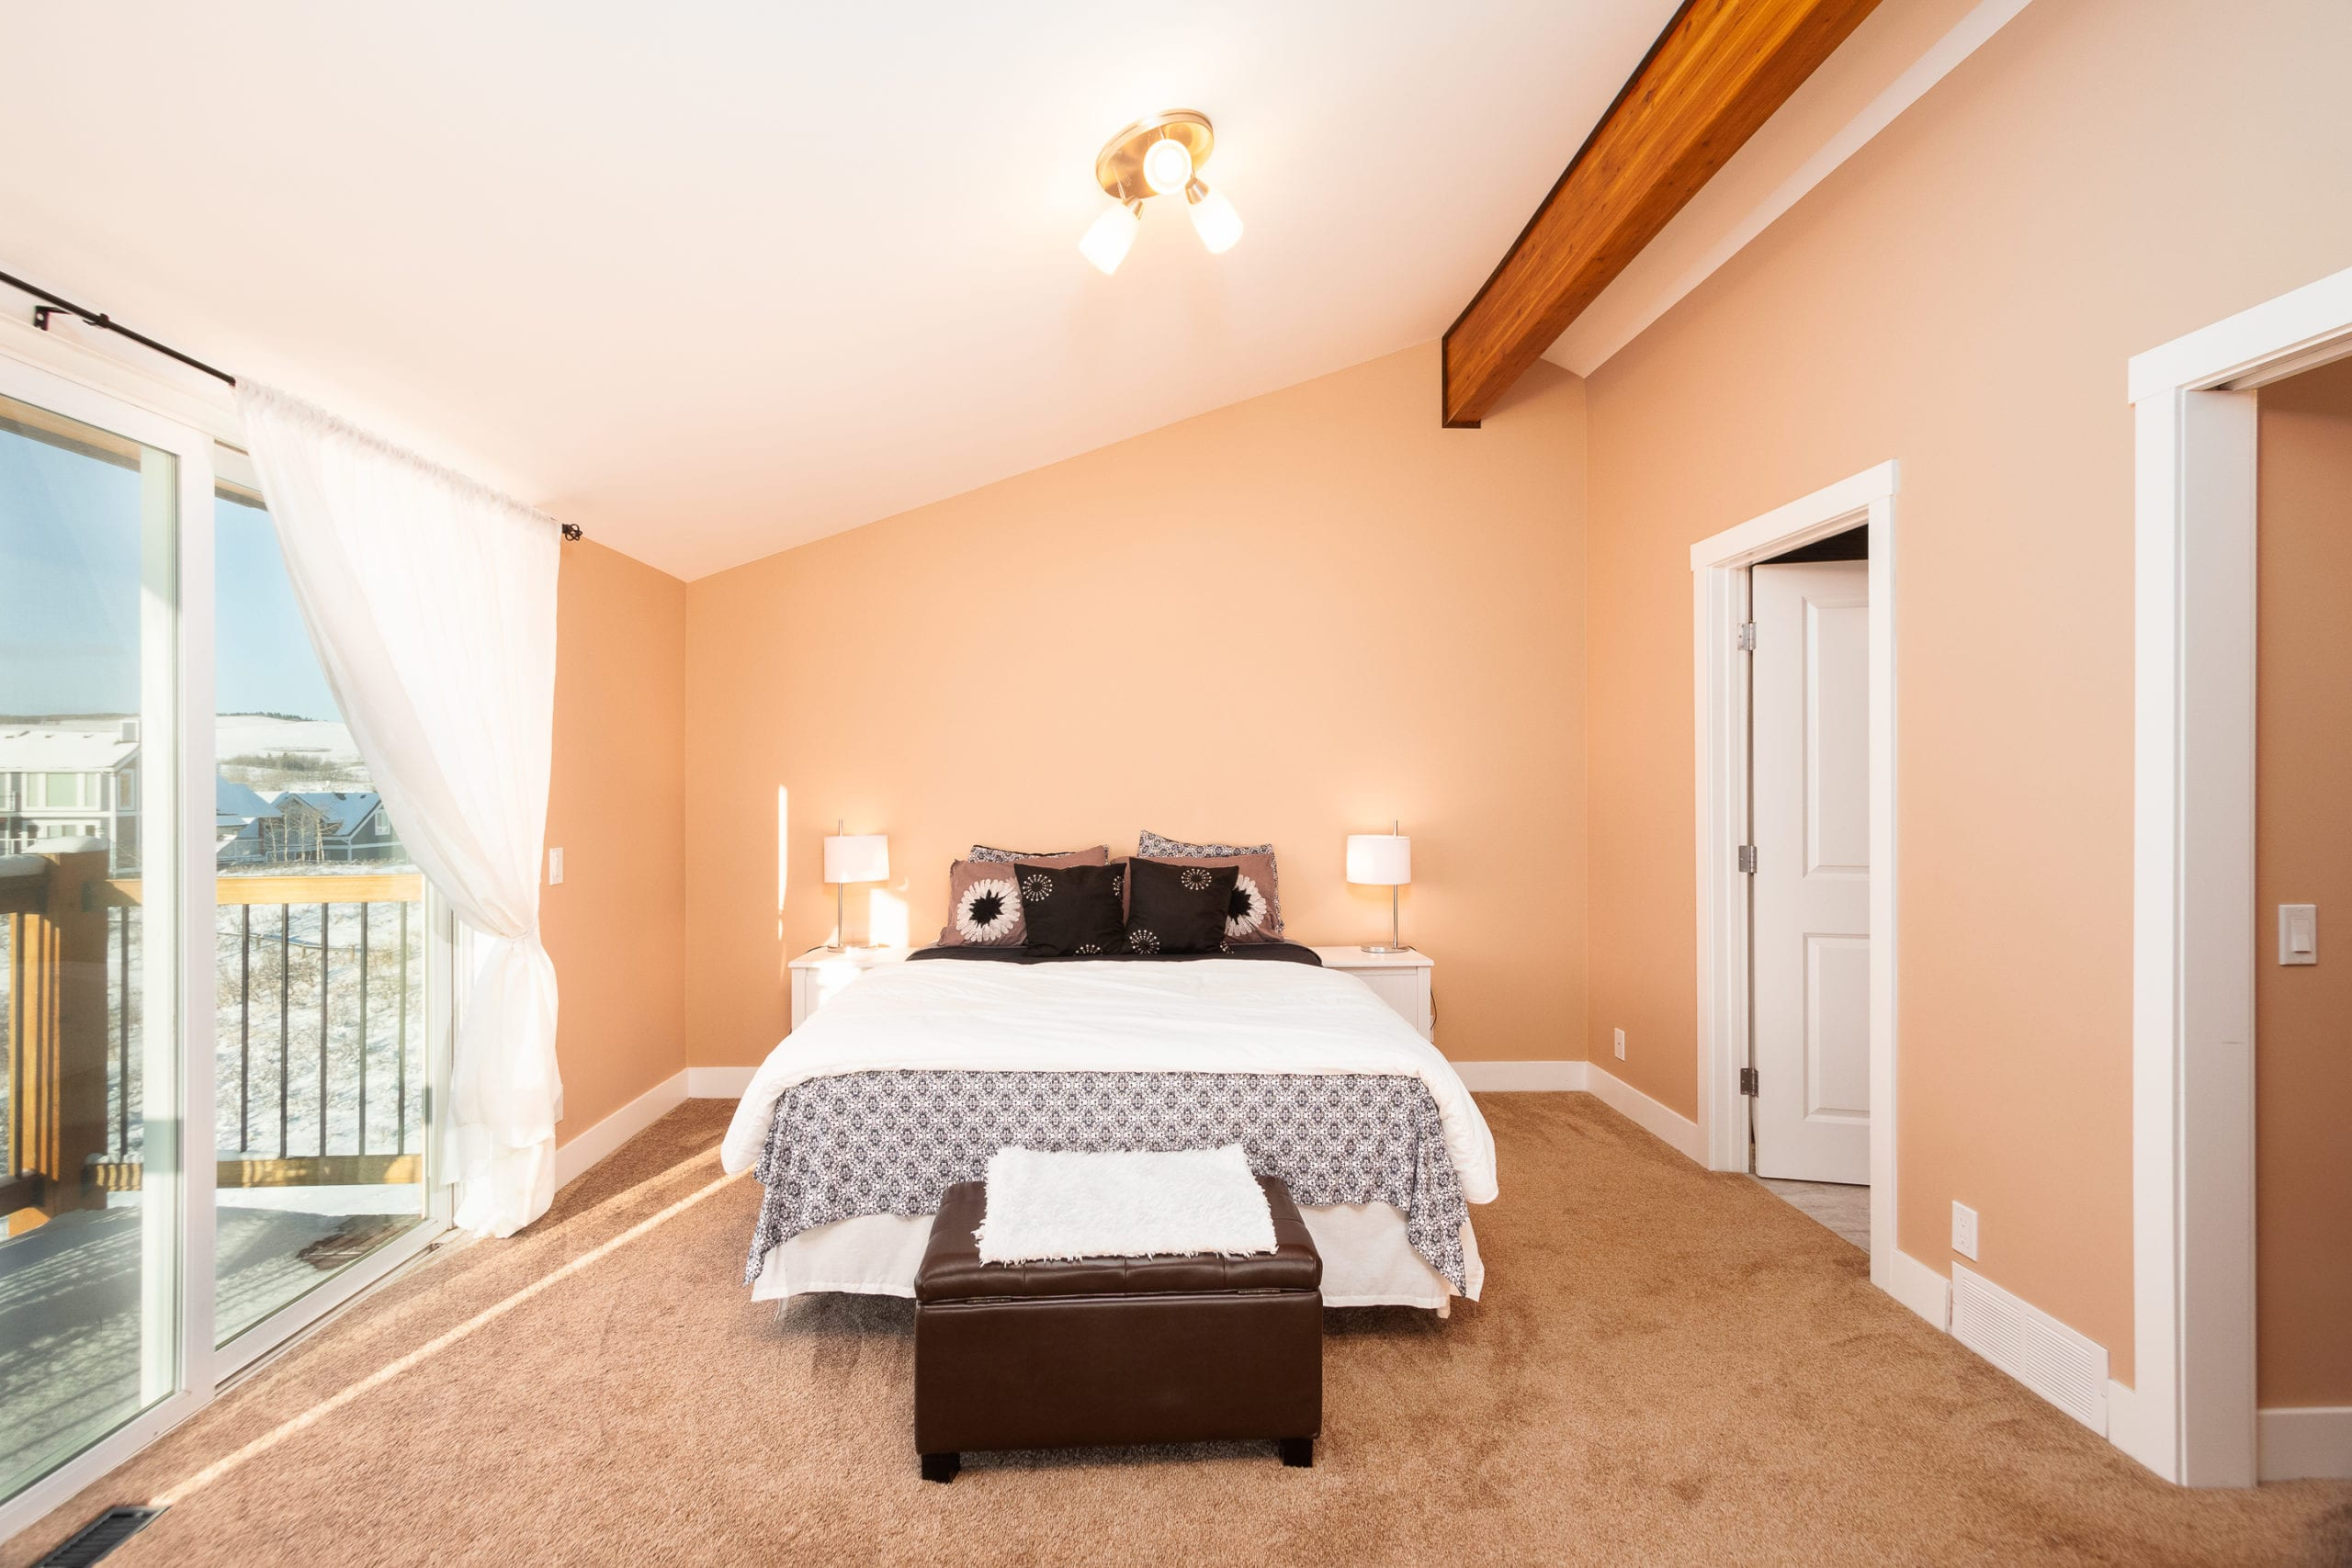 Hello Gorgeous - 456 Cottageclub Cove, Rocky View No. 44, AB - Tara Molina Real Estate (23 of 41)